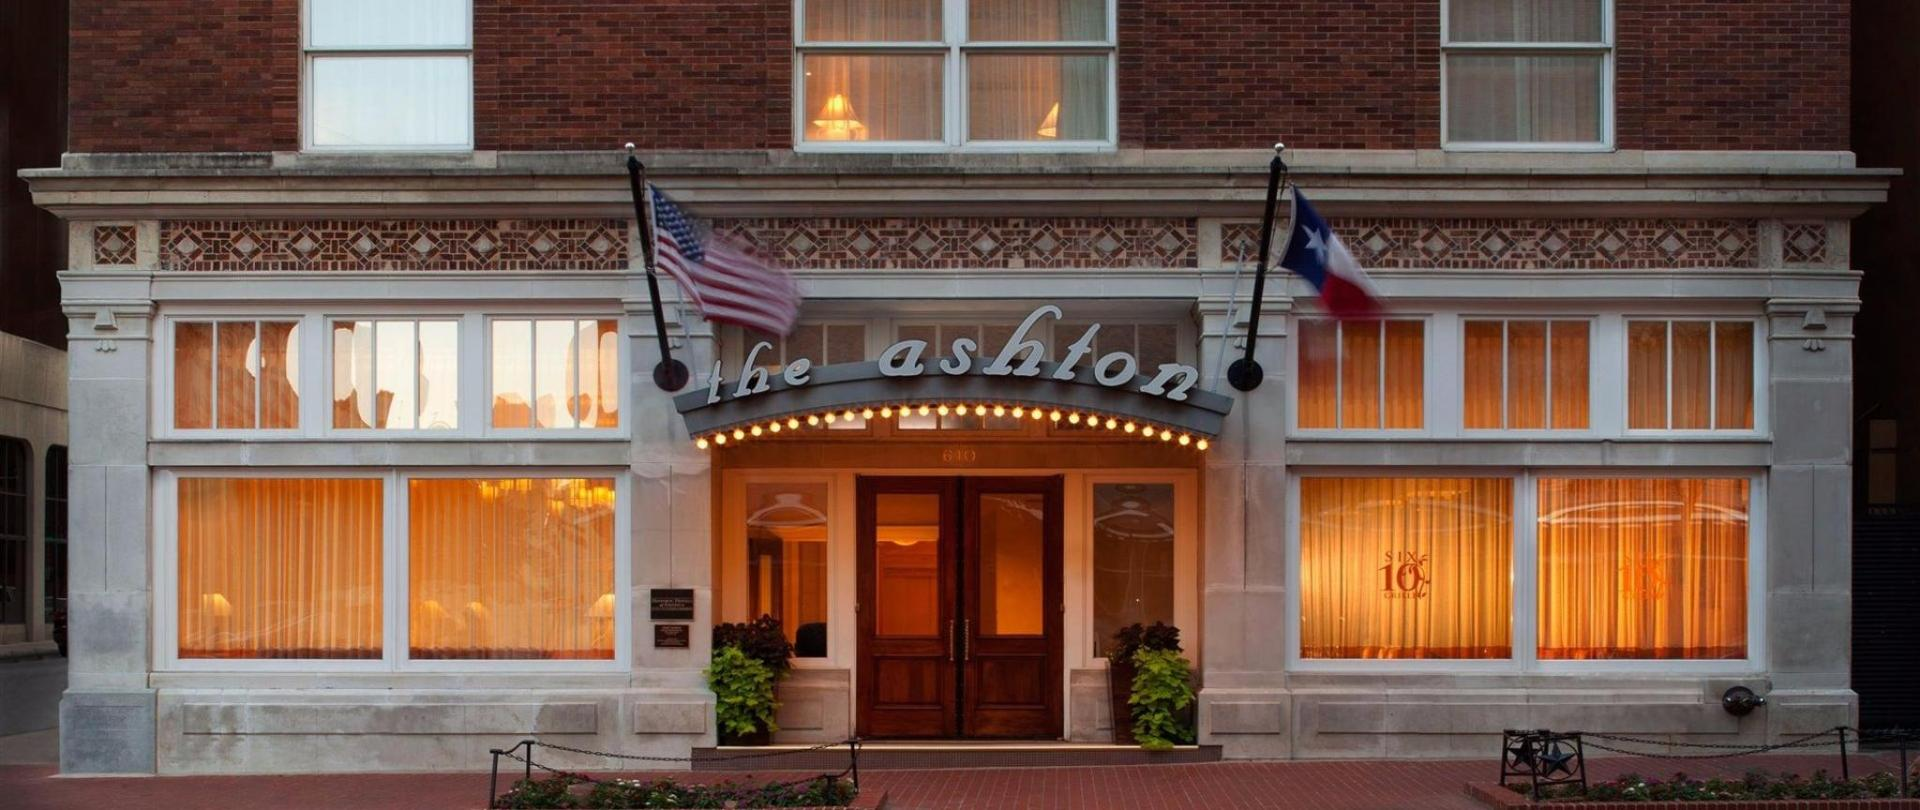 The Ashton Hotel Fort Worth